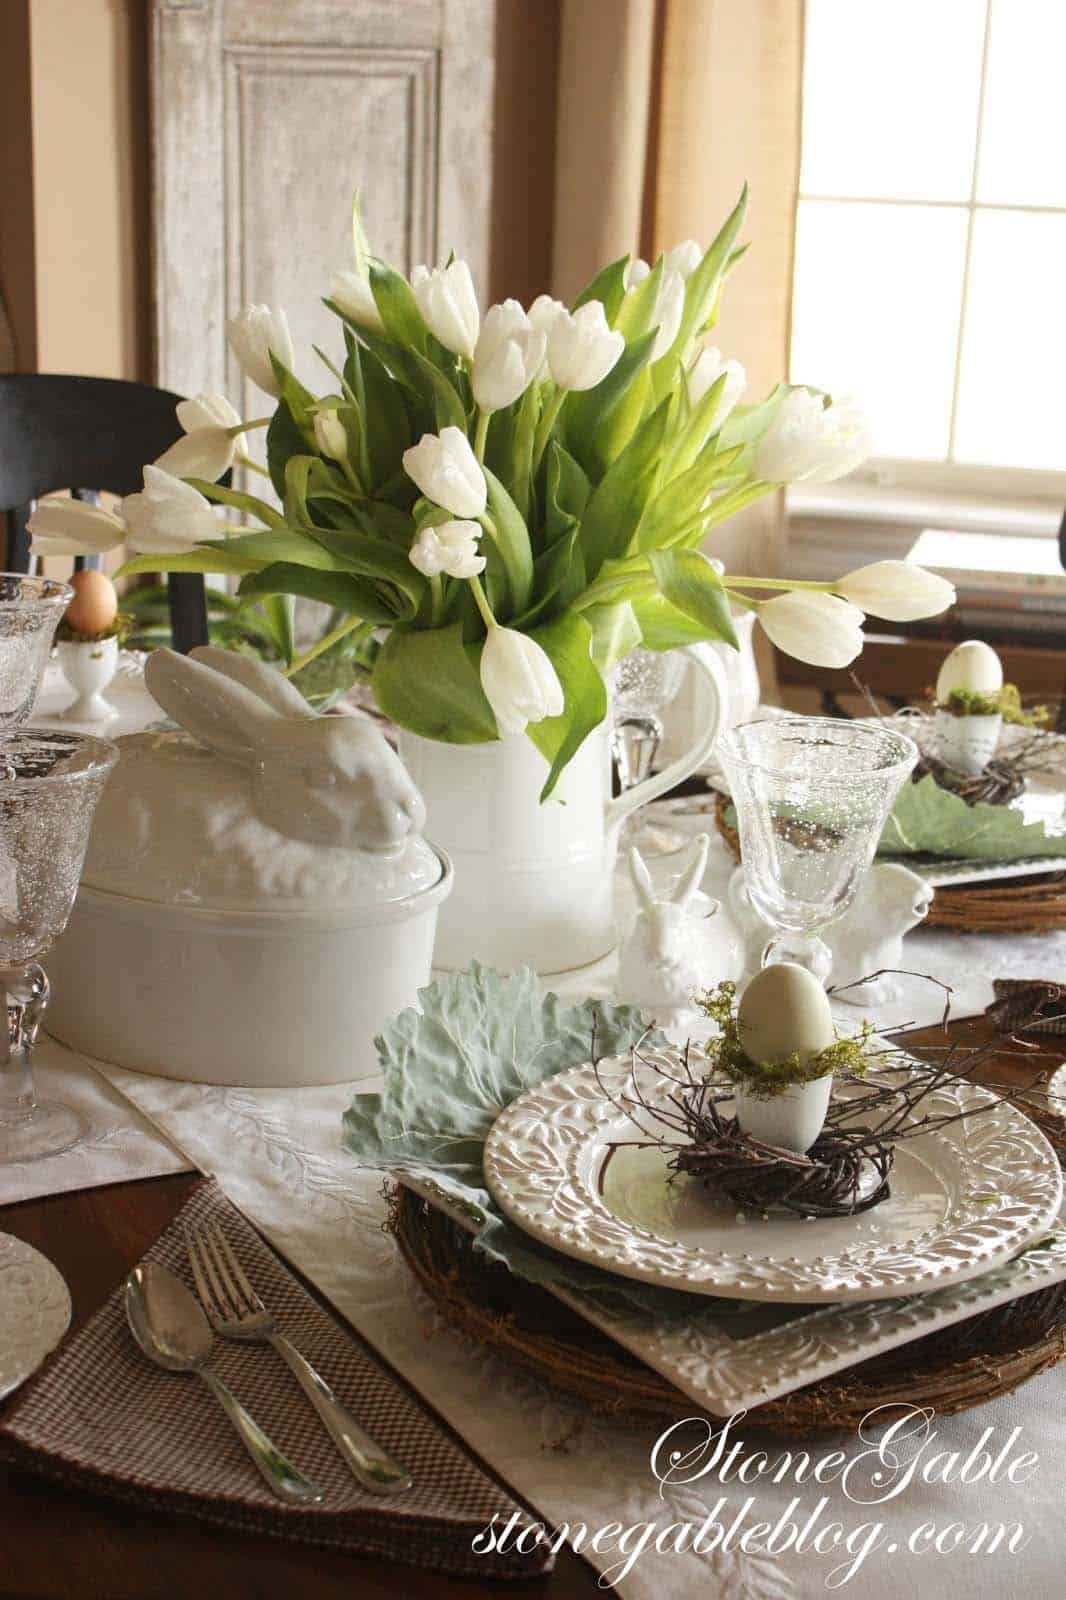 Inspiring Easter Table Centerpiece Ideas-30-1 Kindesign